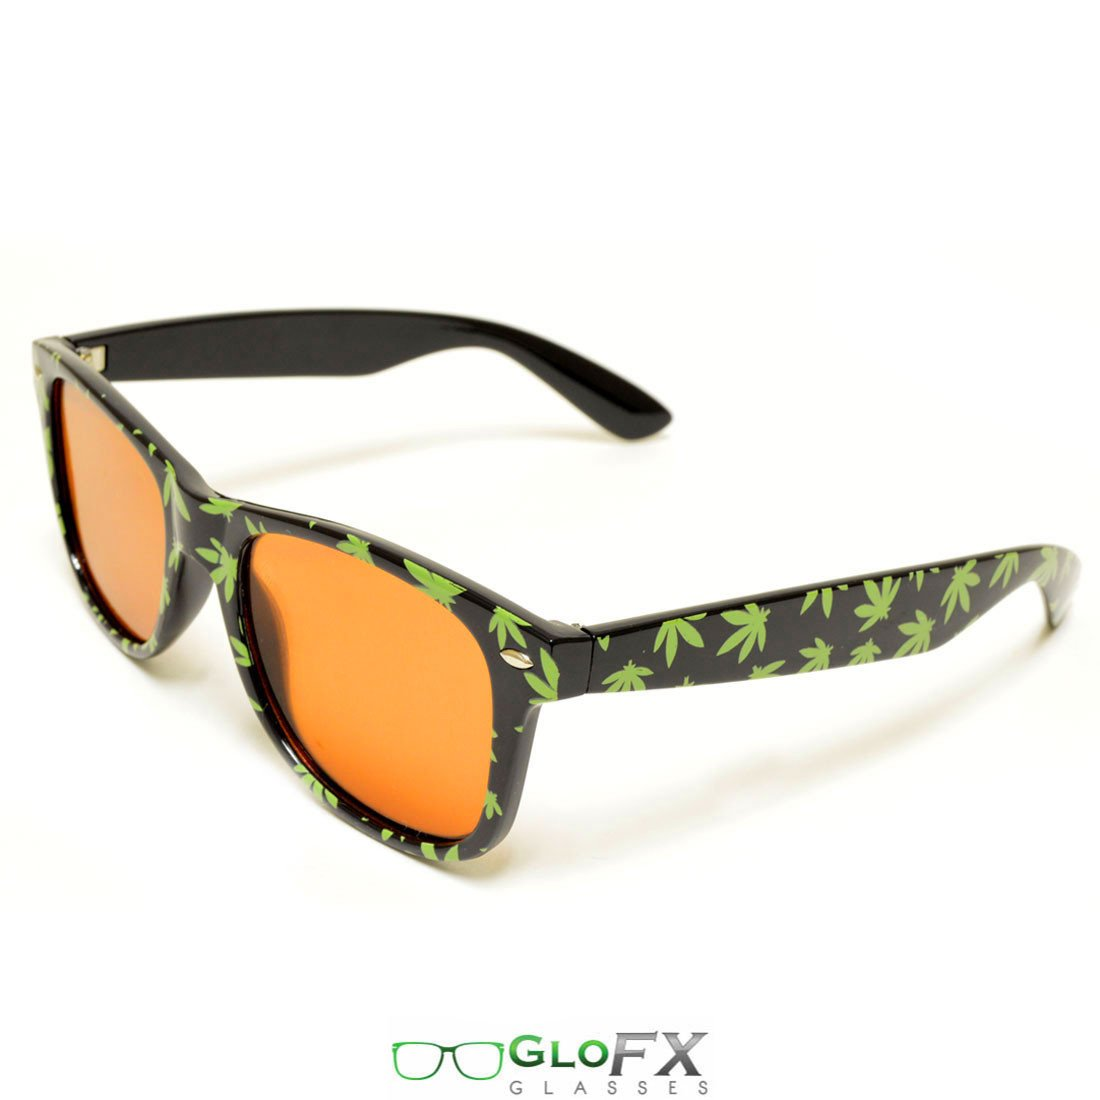 GloFX Weed Leaf Diffraction Glasses- Auburn Enhanced